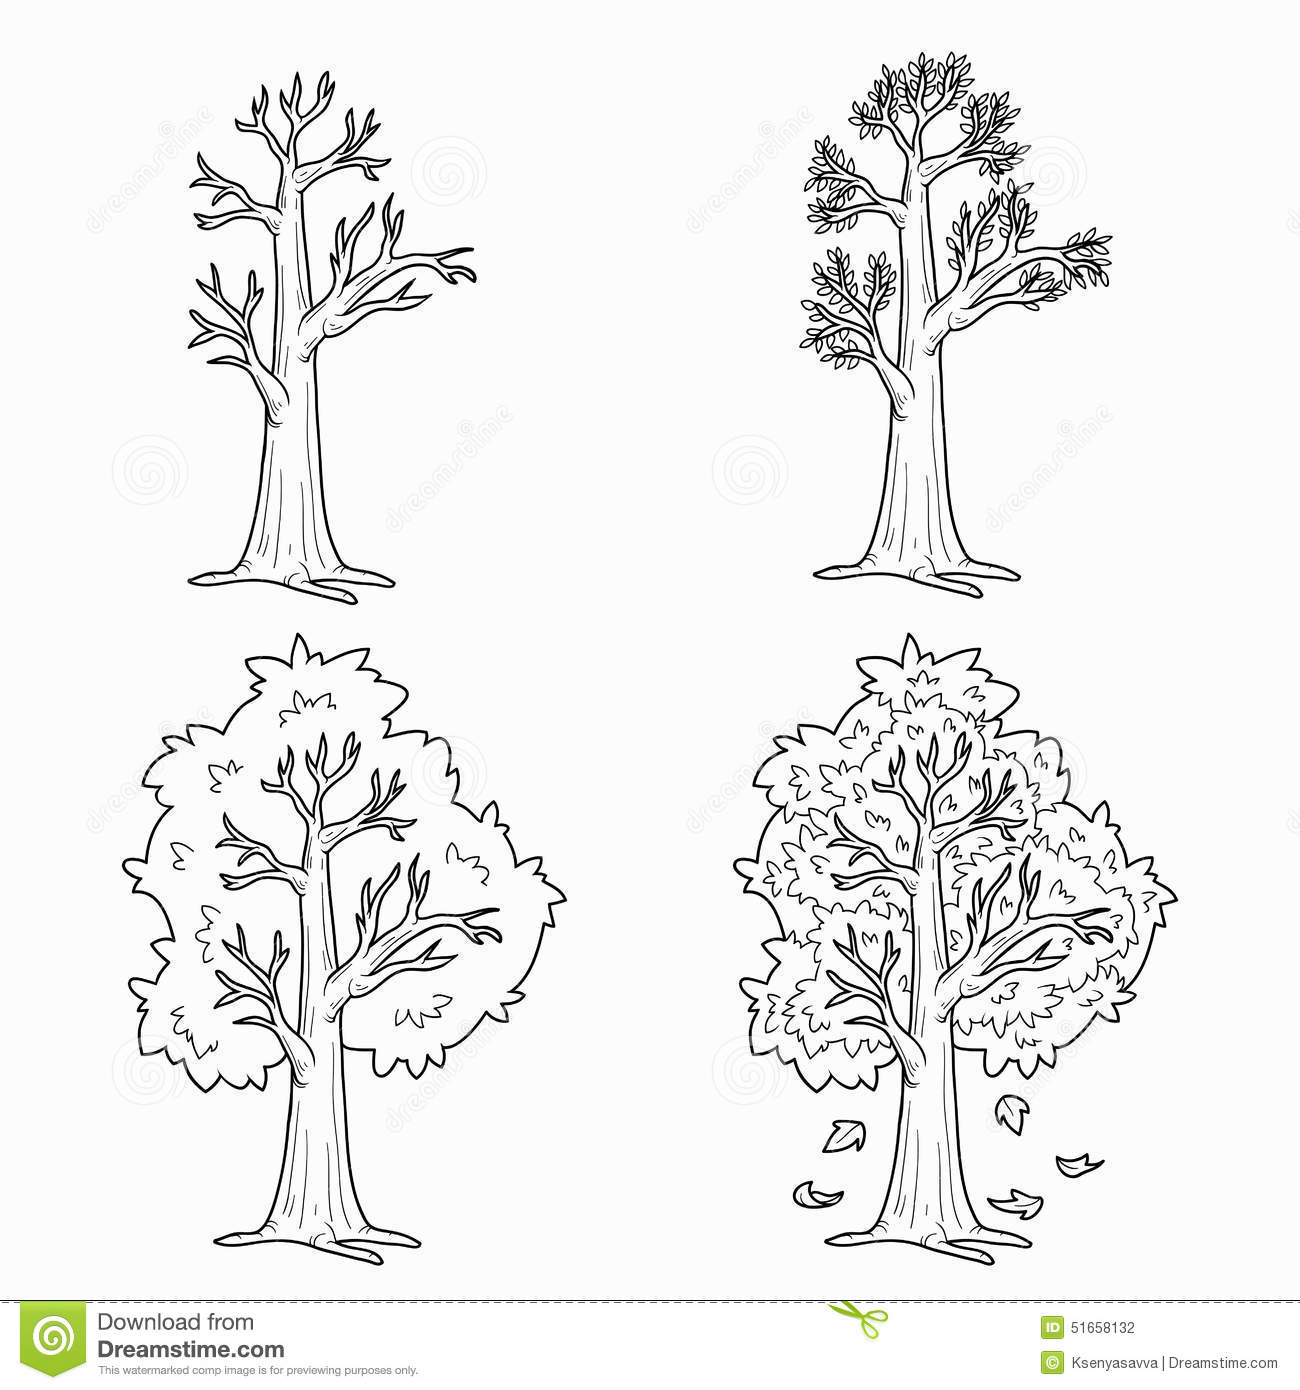 Coloriage Arbre 4 Saisons.Les 4 Saisons Coloriage You Project Info